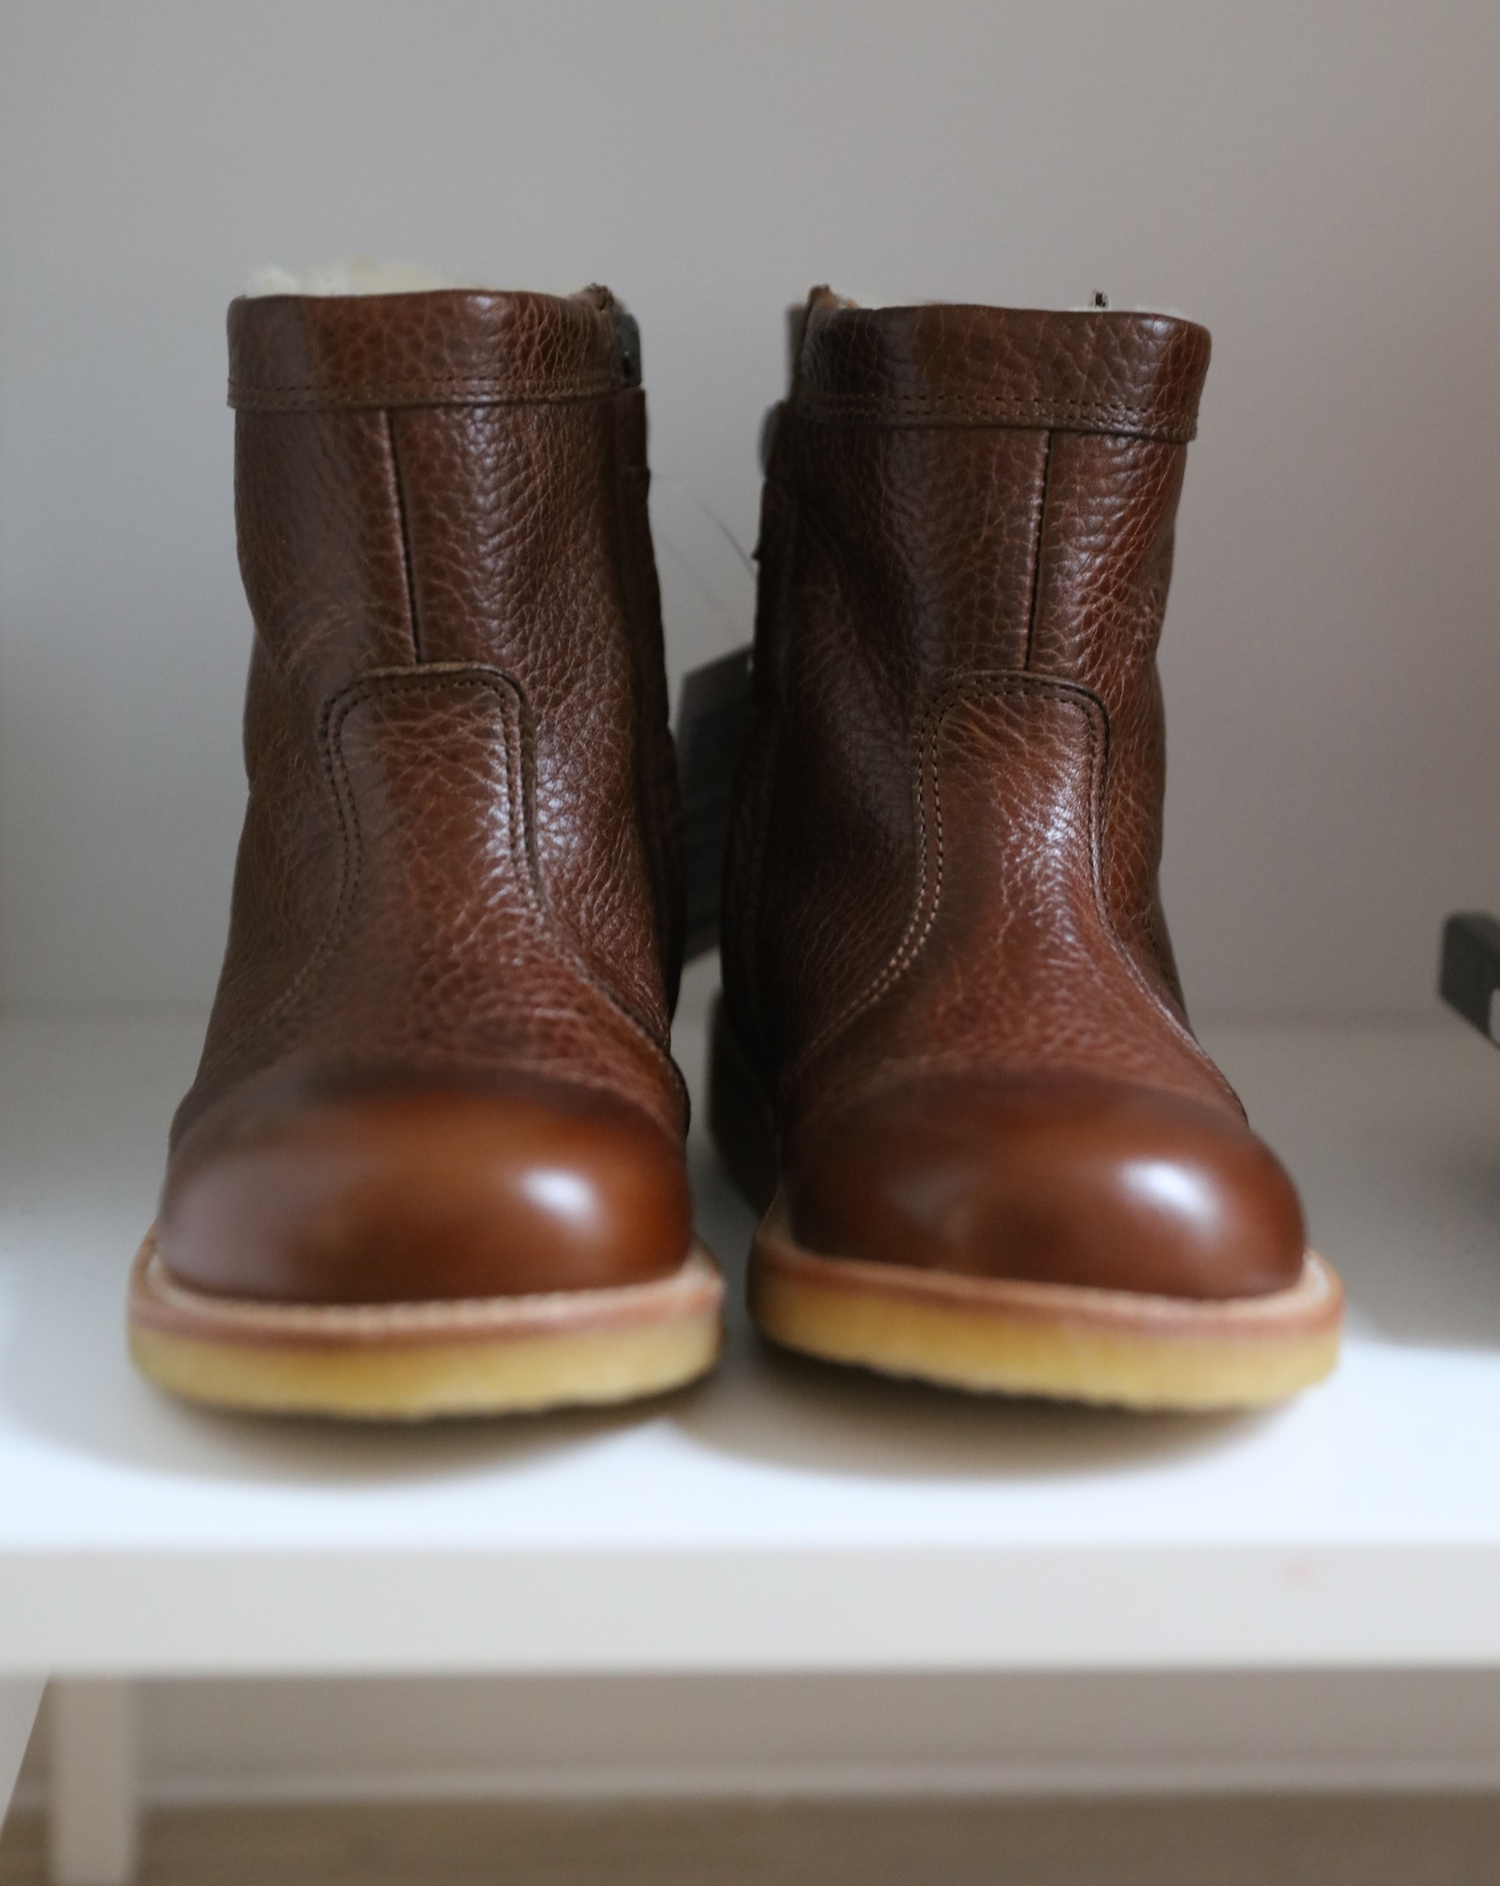 Muddy_creatures_kids_boots_shoes_outfits_service